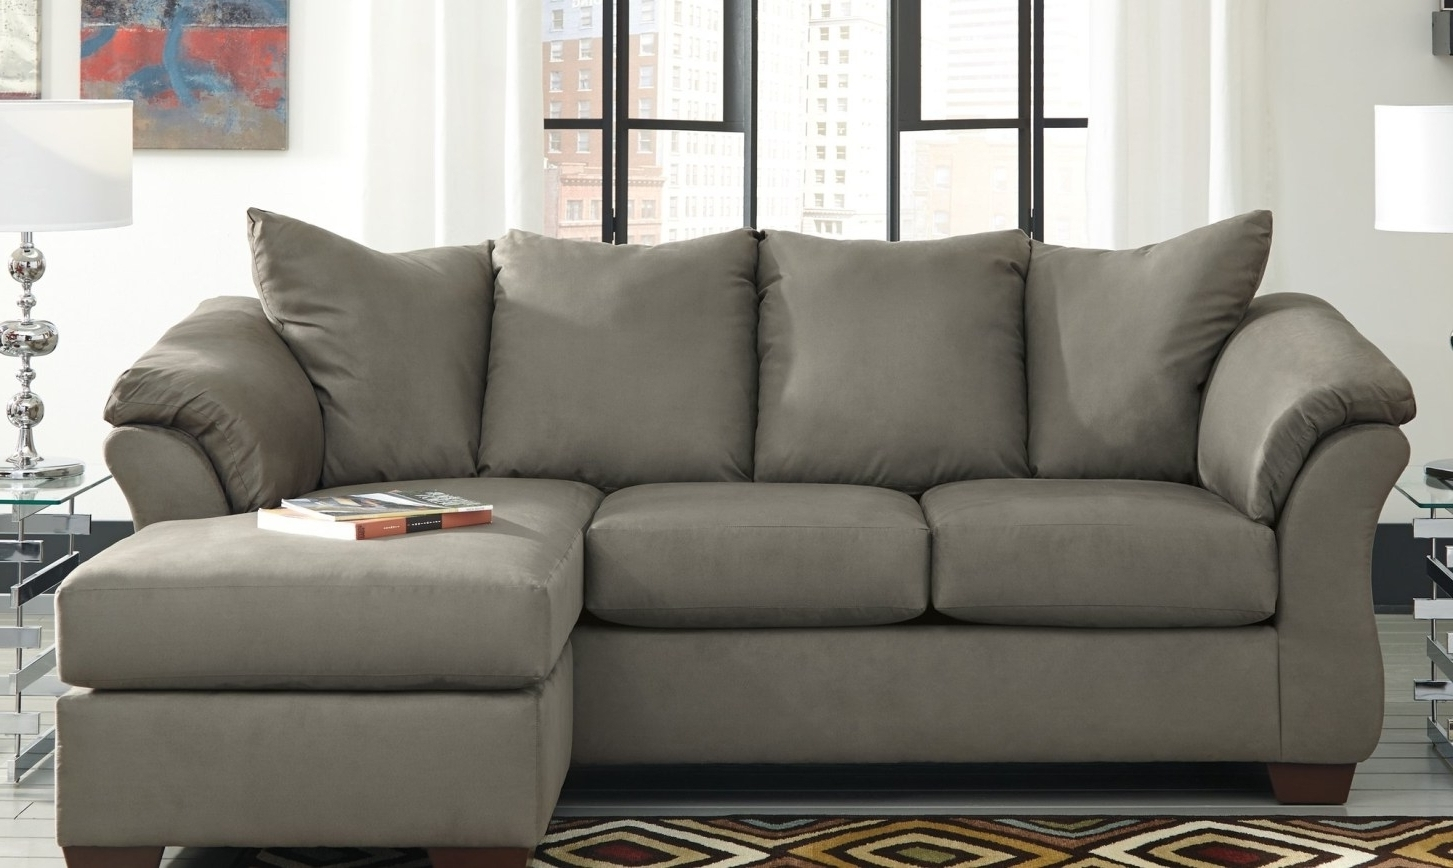 Incredible Abbyson Living Charlotte Dark Brown Sectional Sofa And Within Trendy Charlotte Sectional Sofas (Gallery 9 of 15)